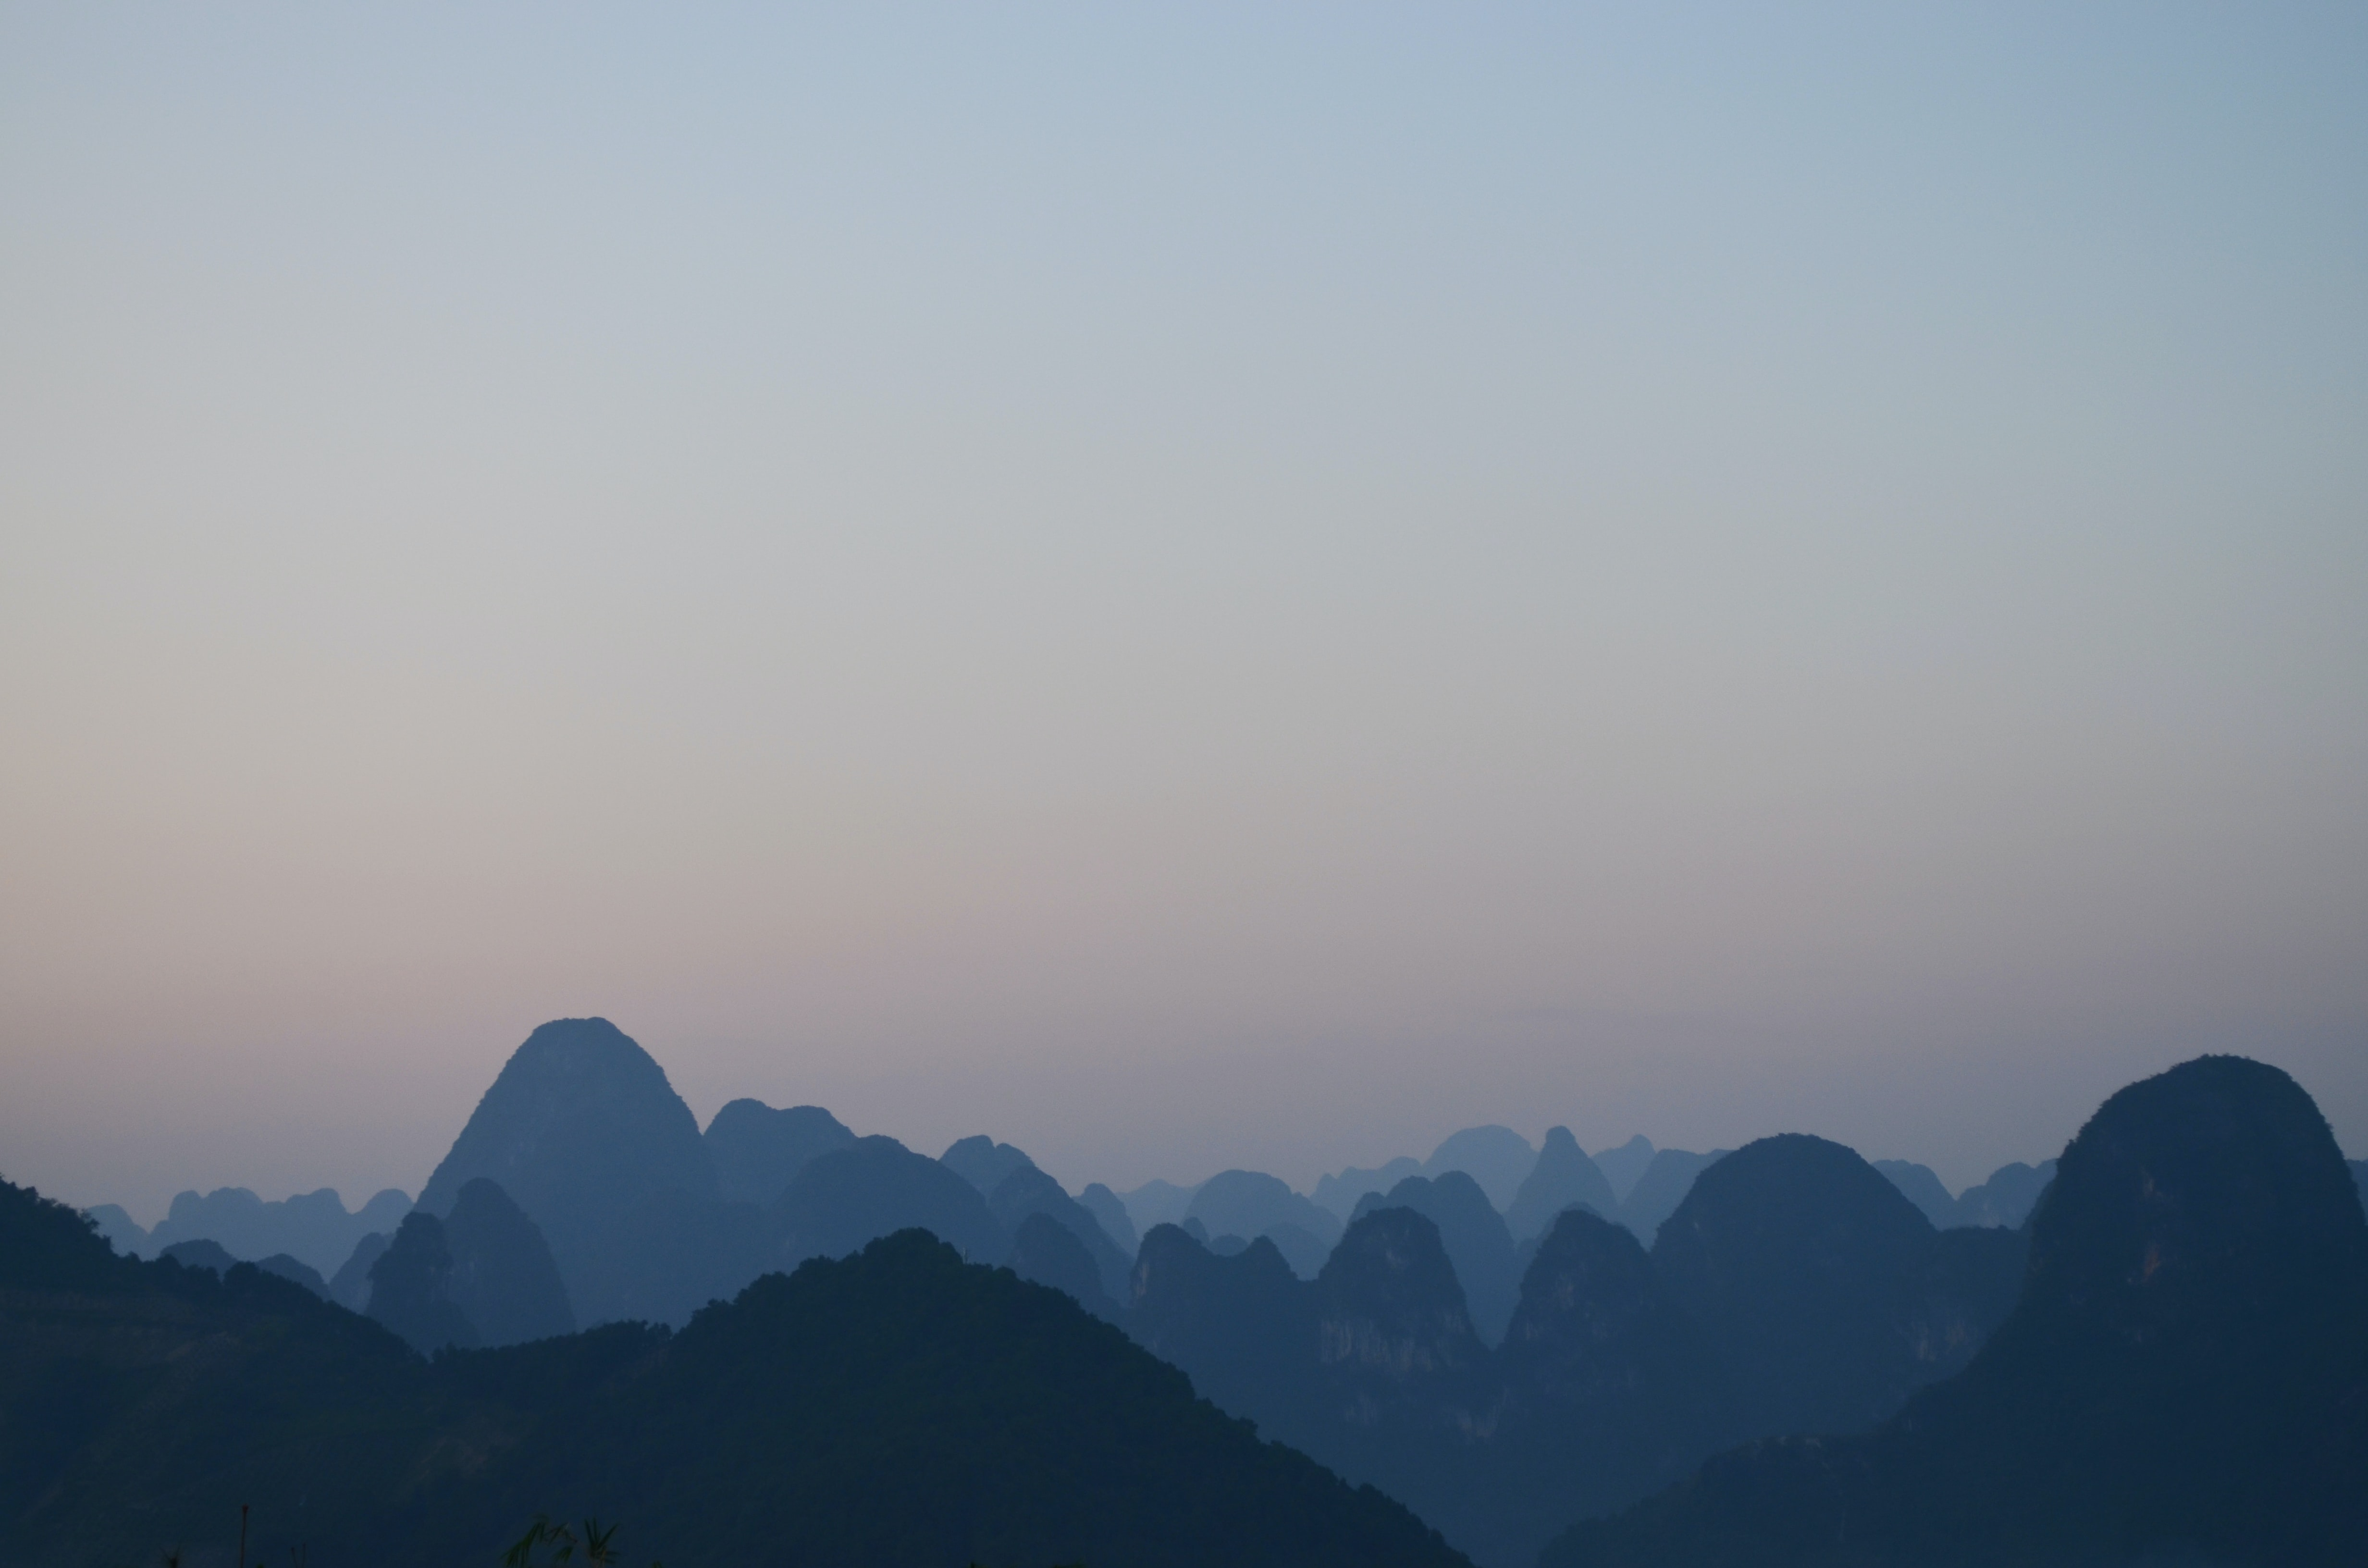 silhouette of mountains under gray sky at daytime